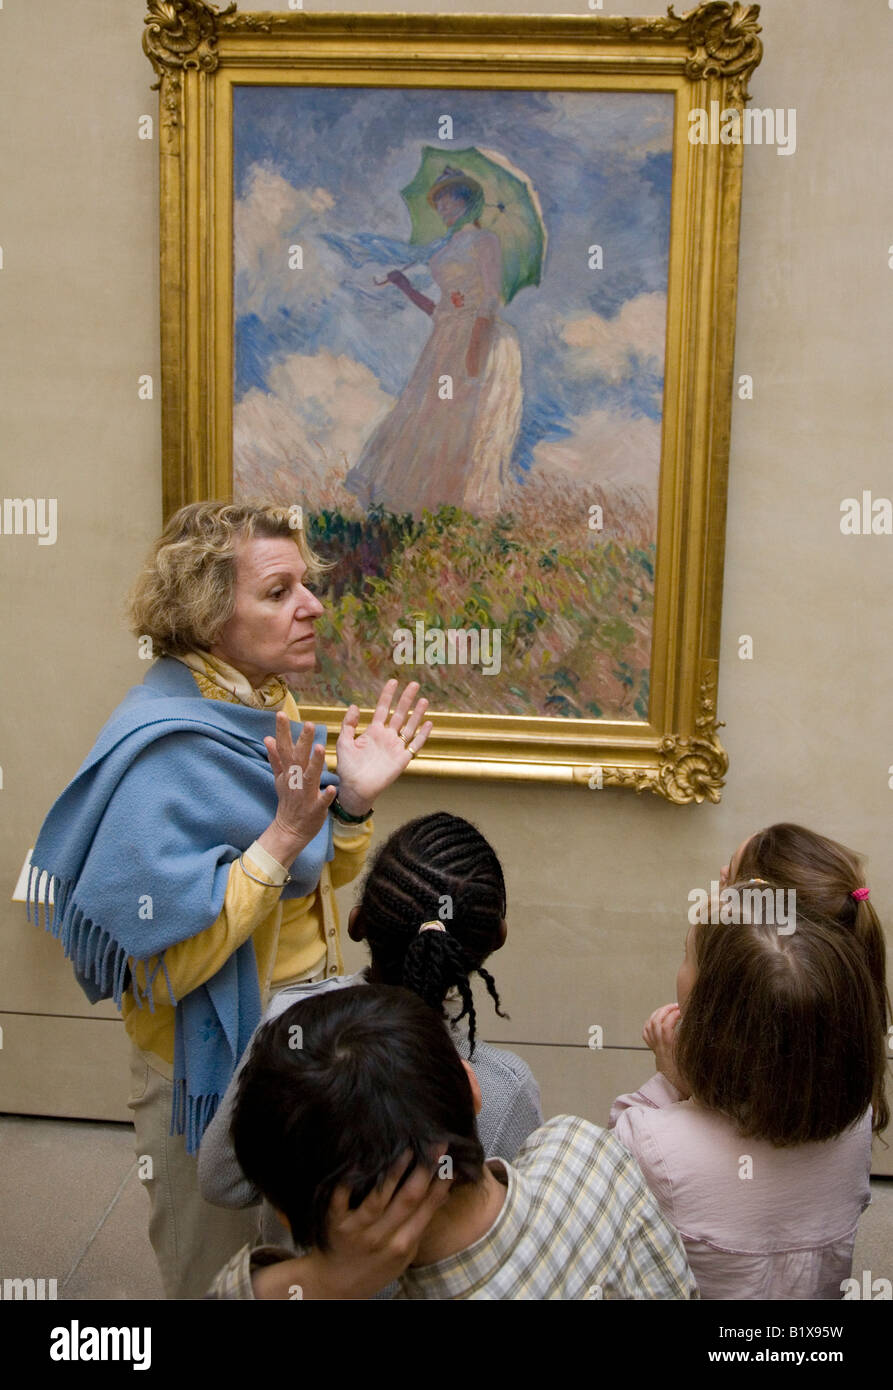 Teacher with young french schoolchildren looking at Monet painting Musee D'Orsay Paris France - Stock Image